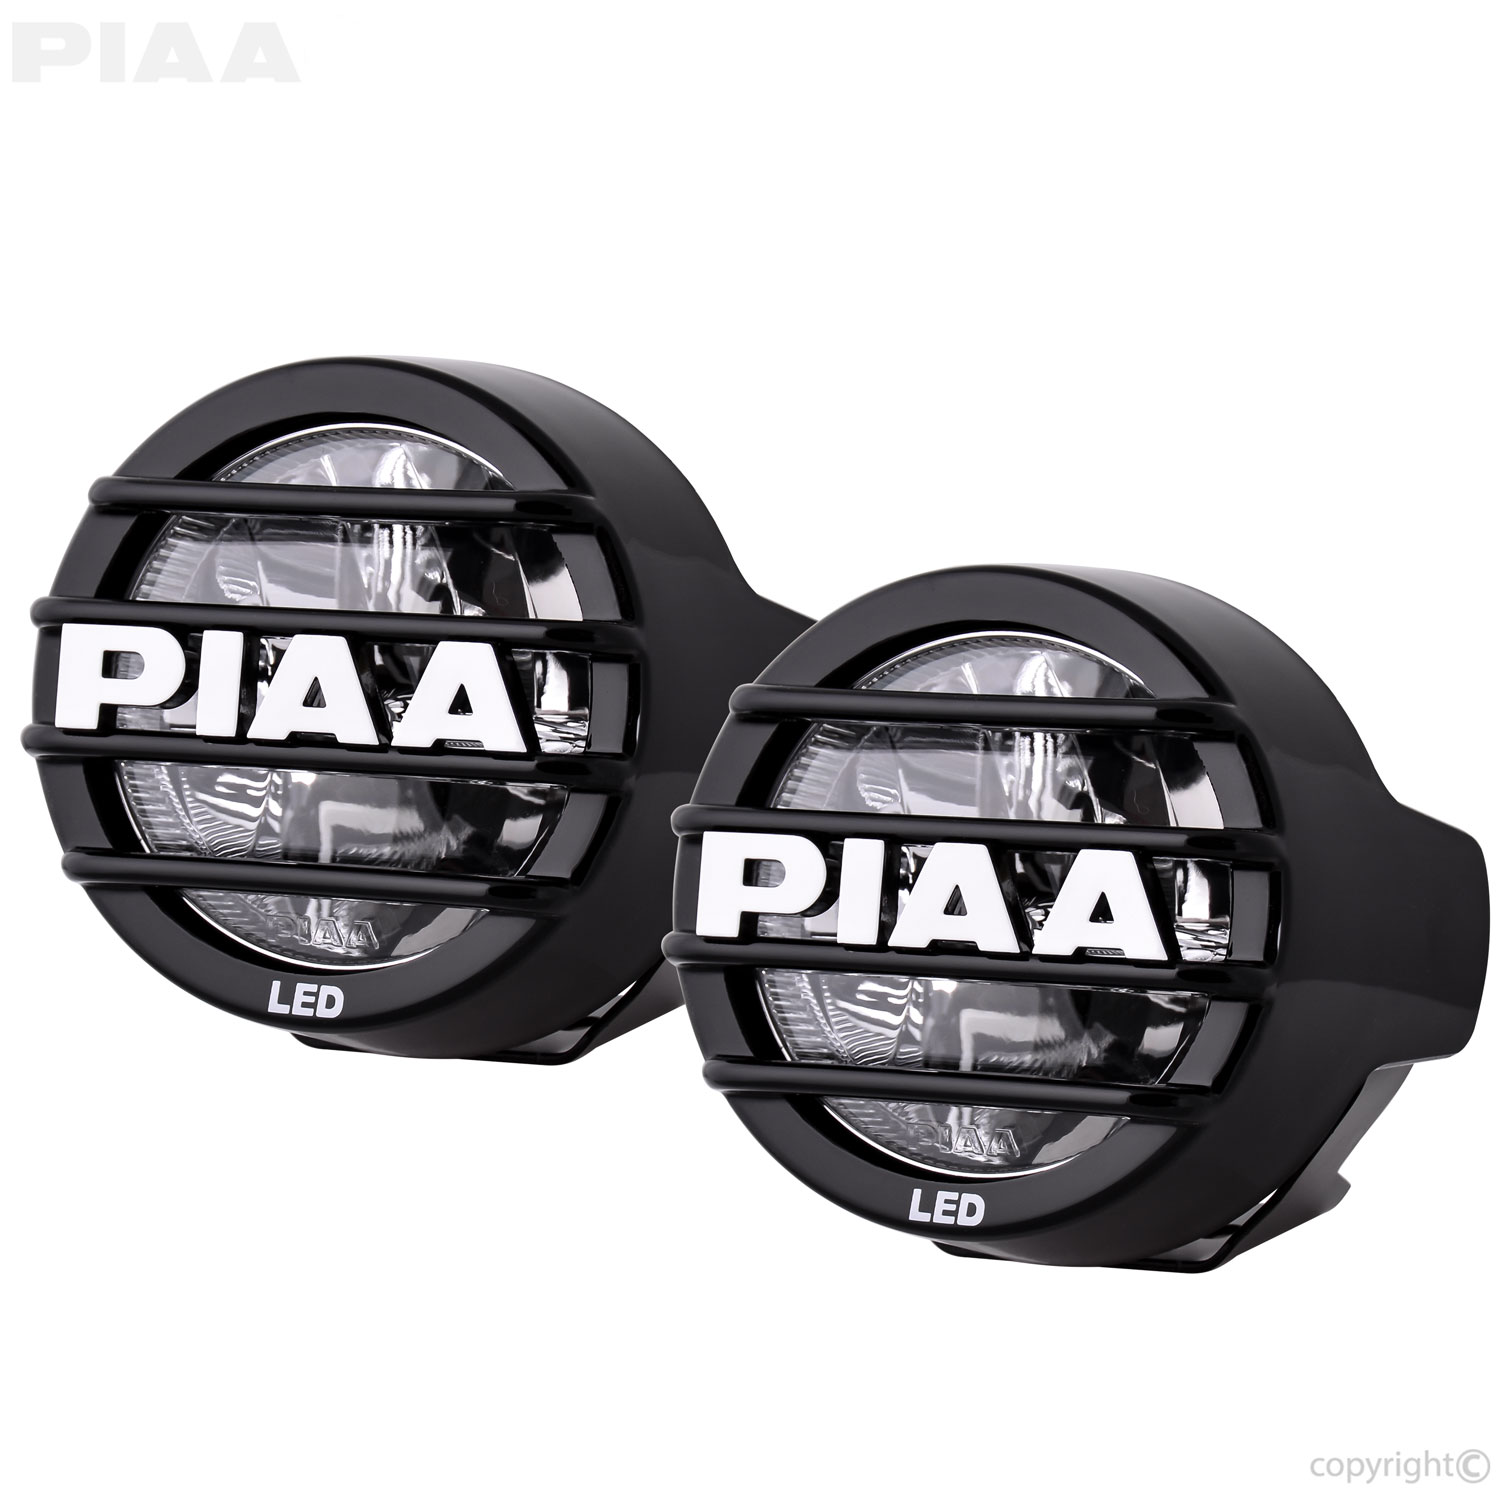 Piaa Automotive Lamps Wiring Diagram For Fogs Lows Highs And Backup Lights Just Lp530 Led White Wide Spread Fog Beam Kit